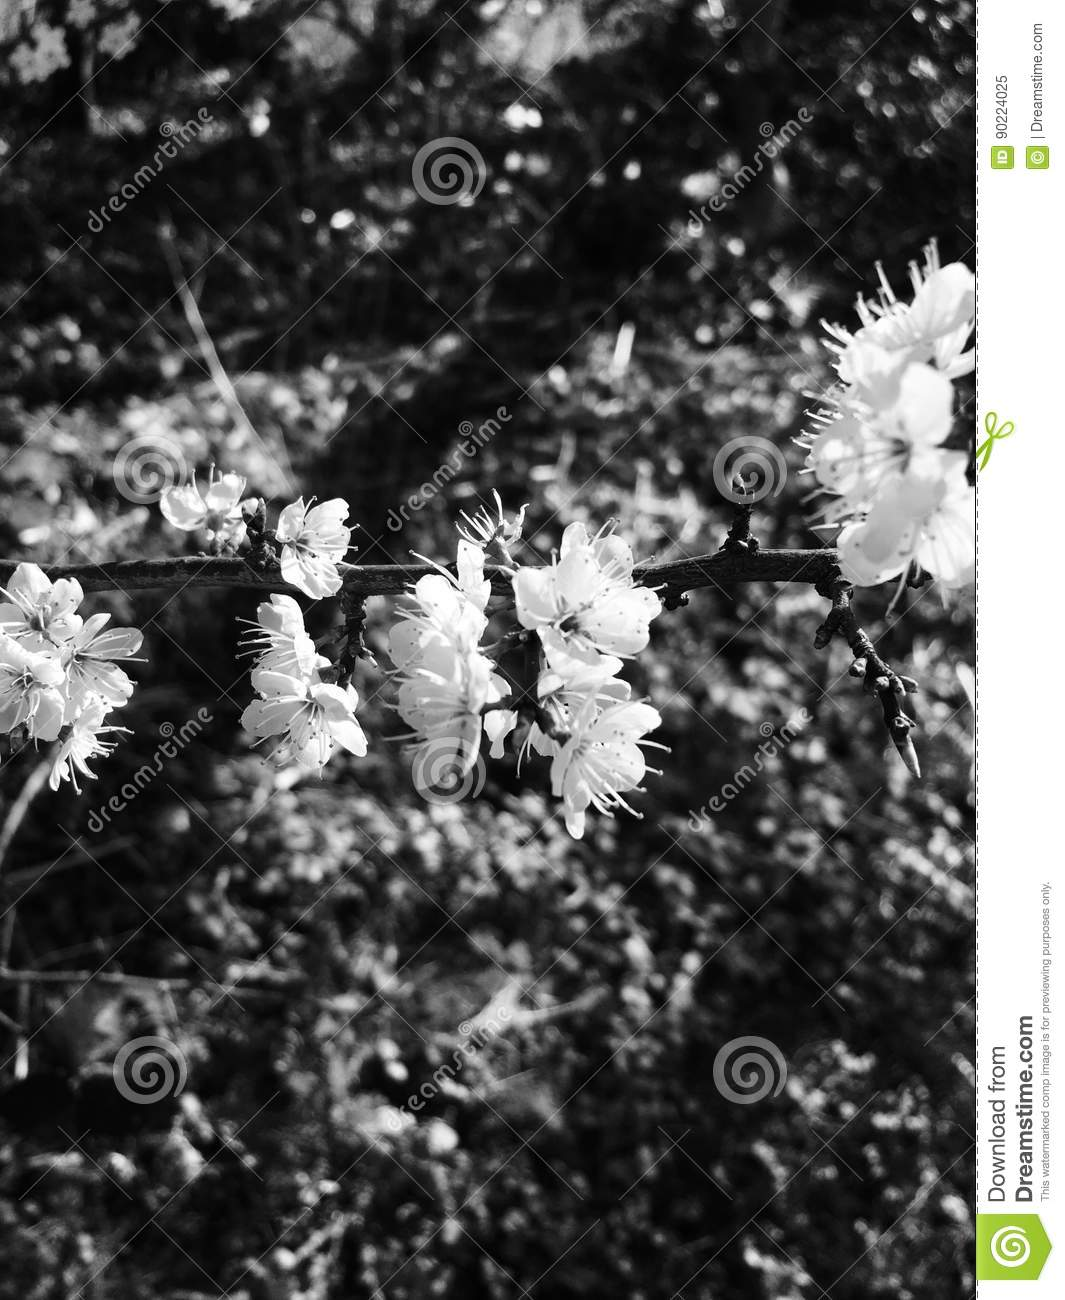 Black And White Flowers Editorial Image Image Of Blossom 90224025